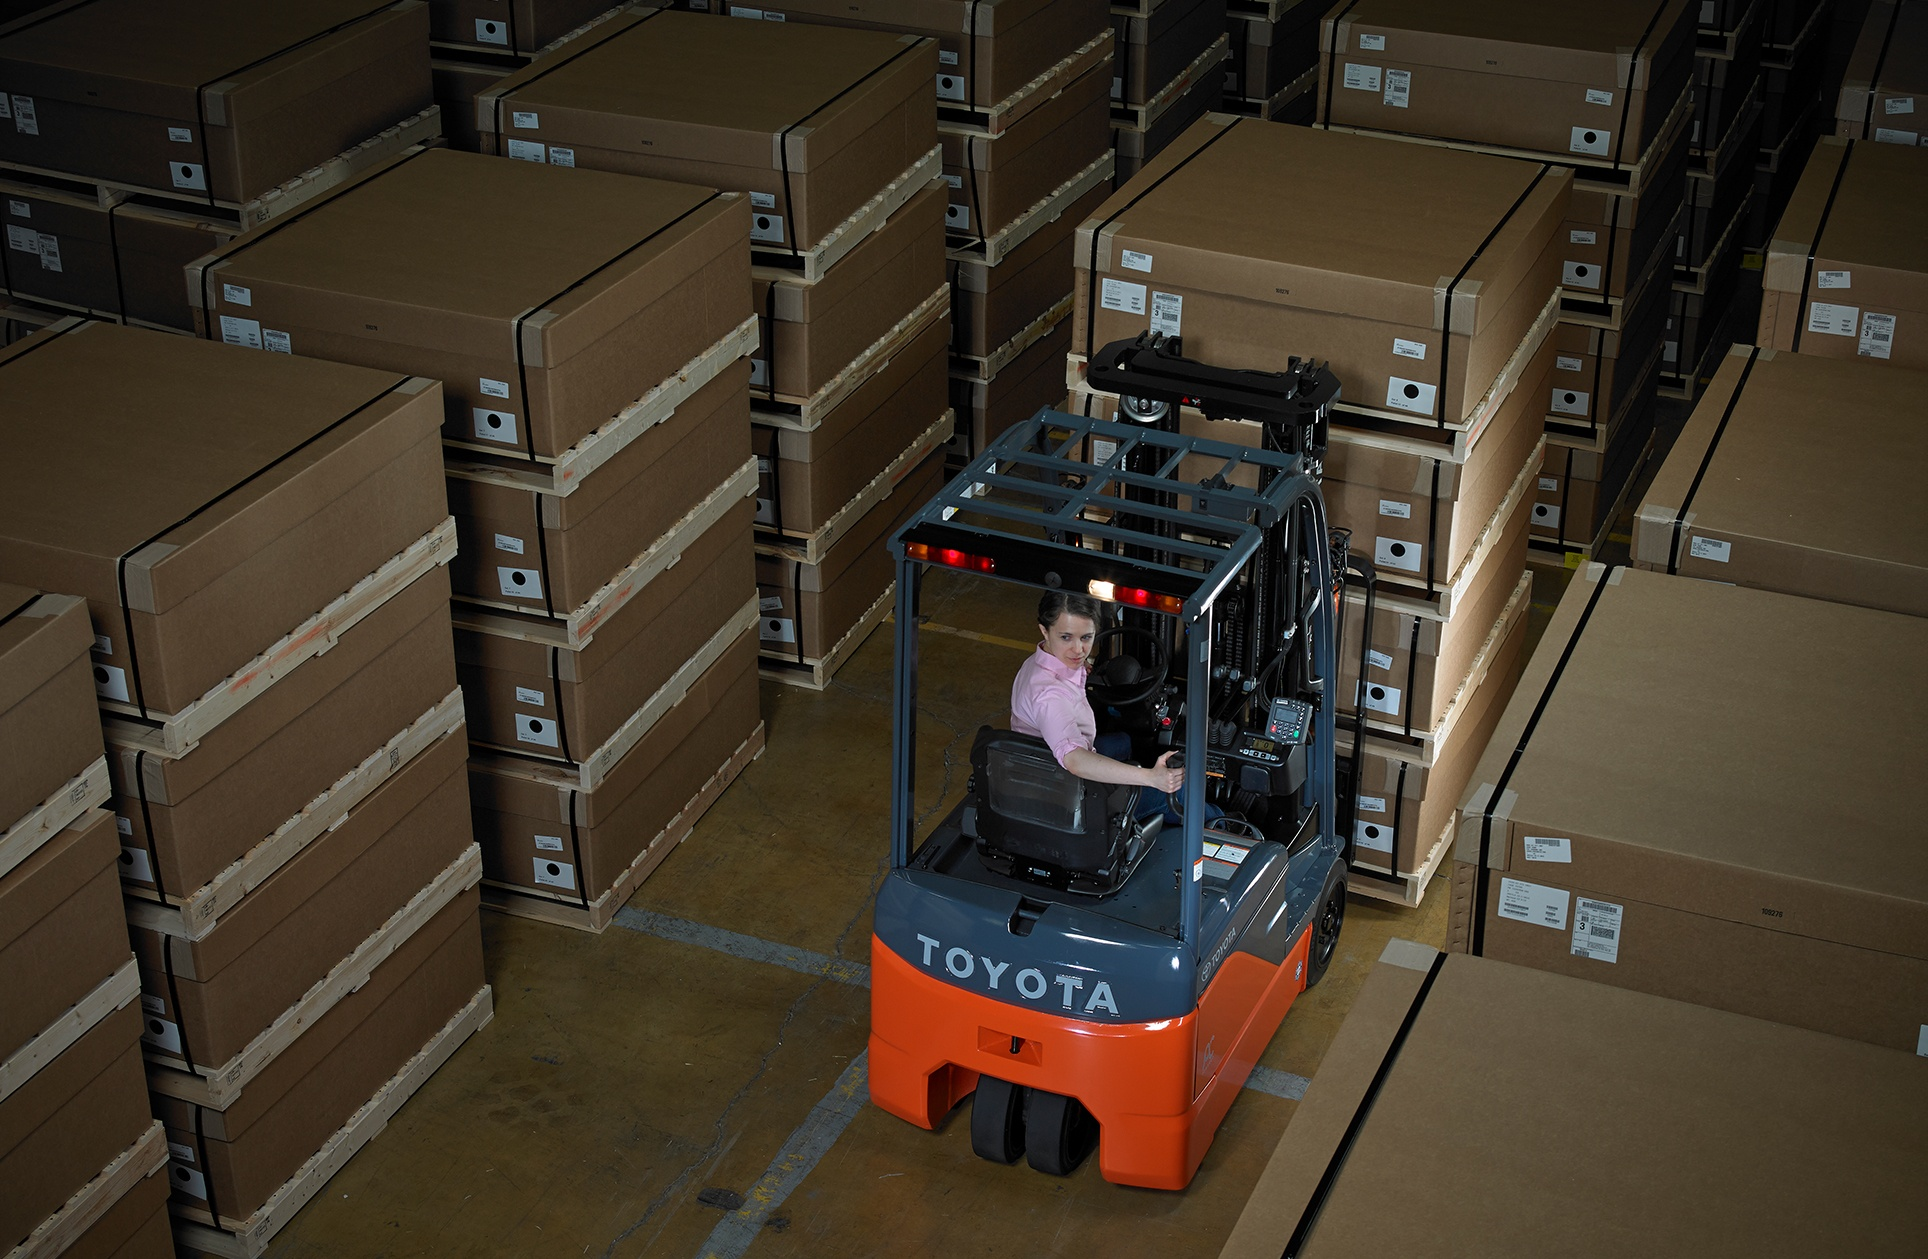 Toyota 3-Wheel Electric Forklift being used in warehouse